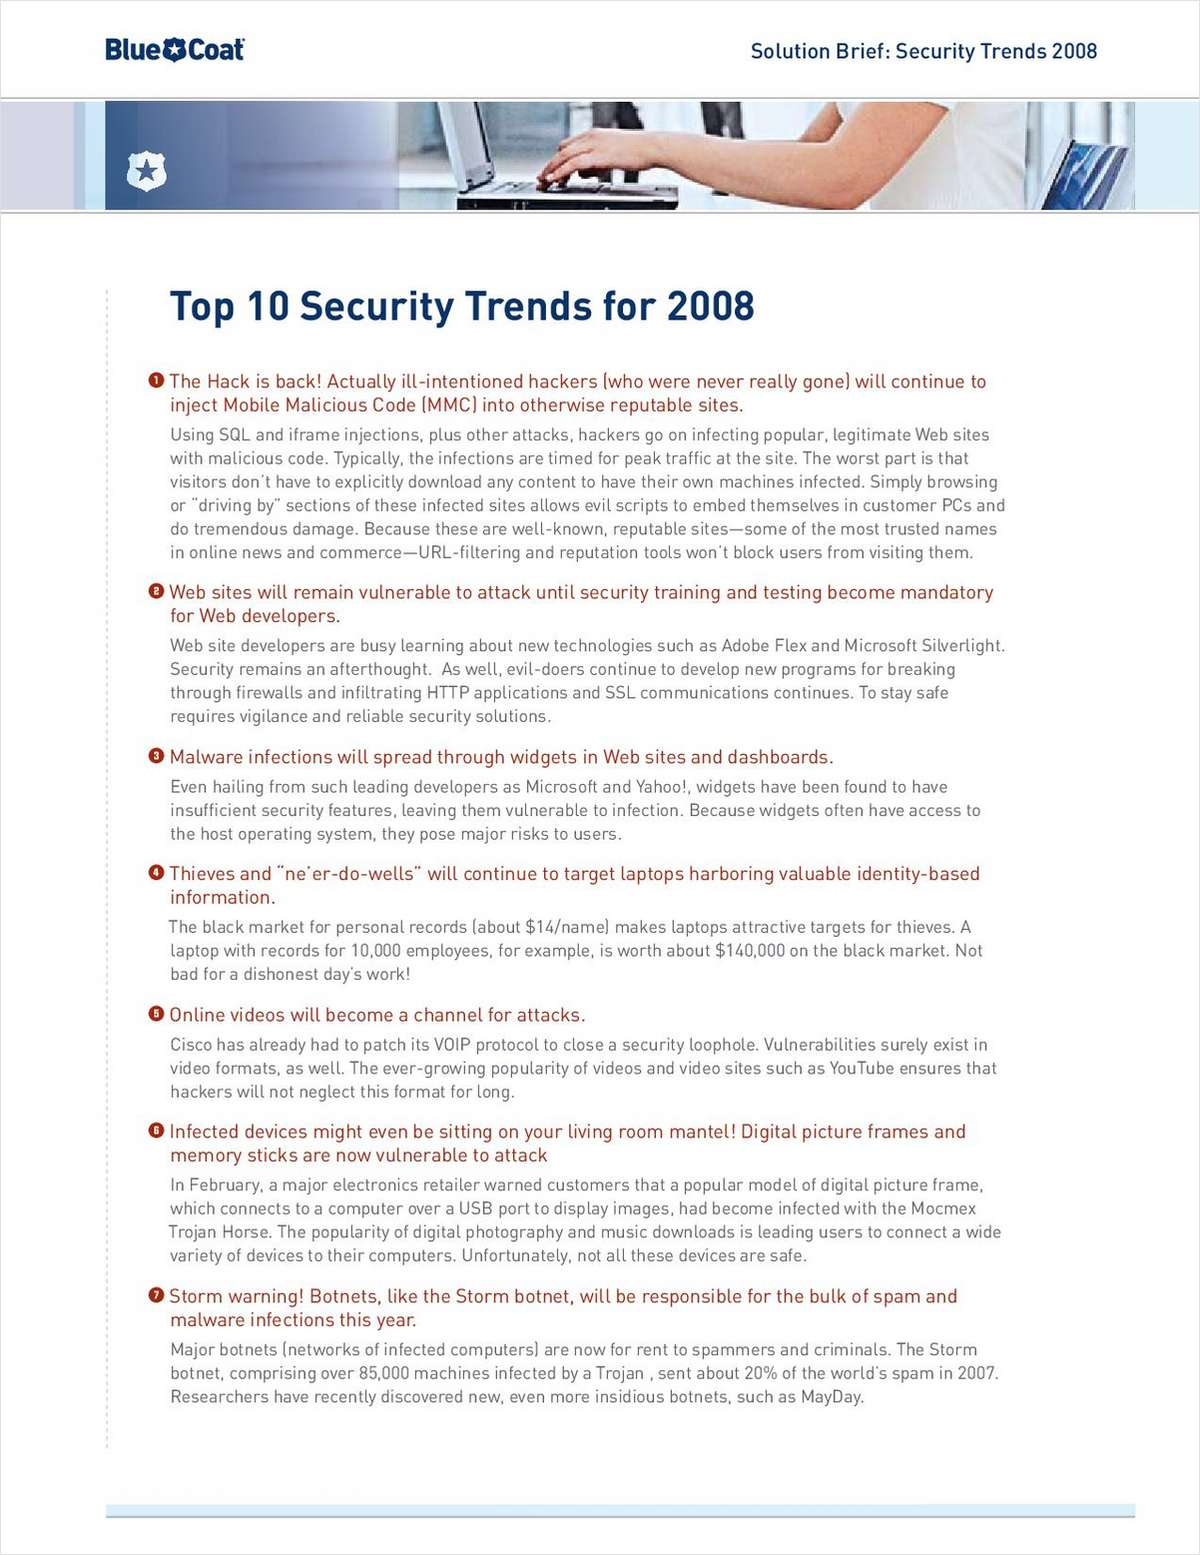 Top 10 Security Trends for 2008